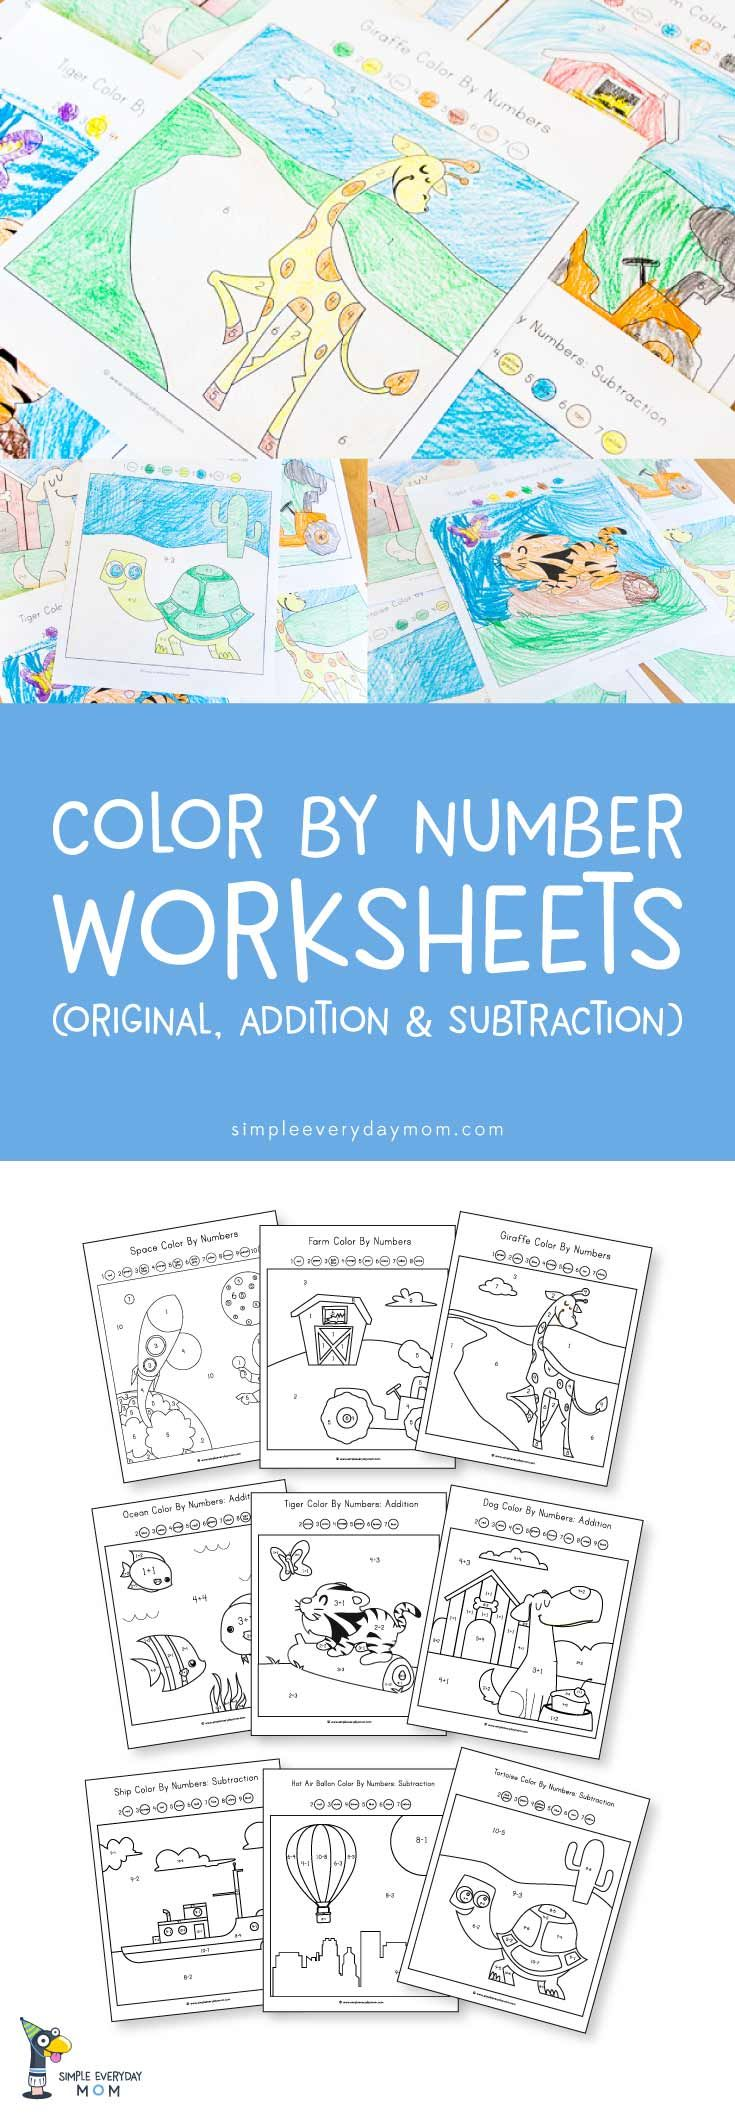 9 Fun Color By Number Worksheets That Teach Math The Easy Way | Mom ...